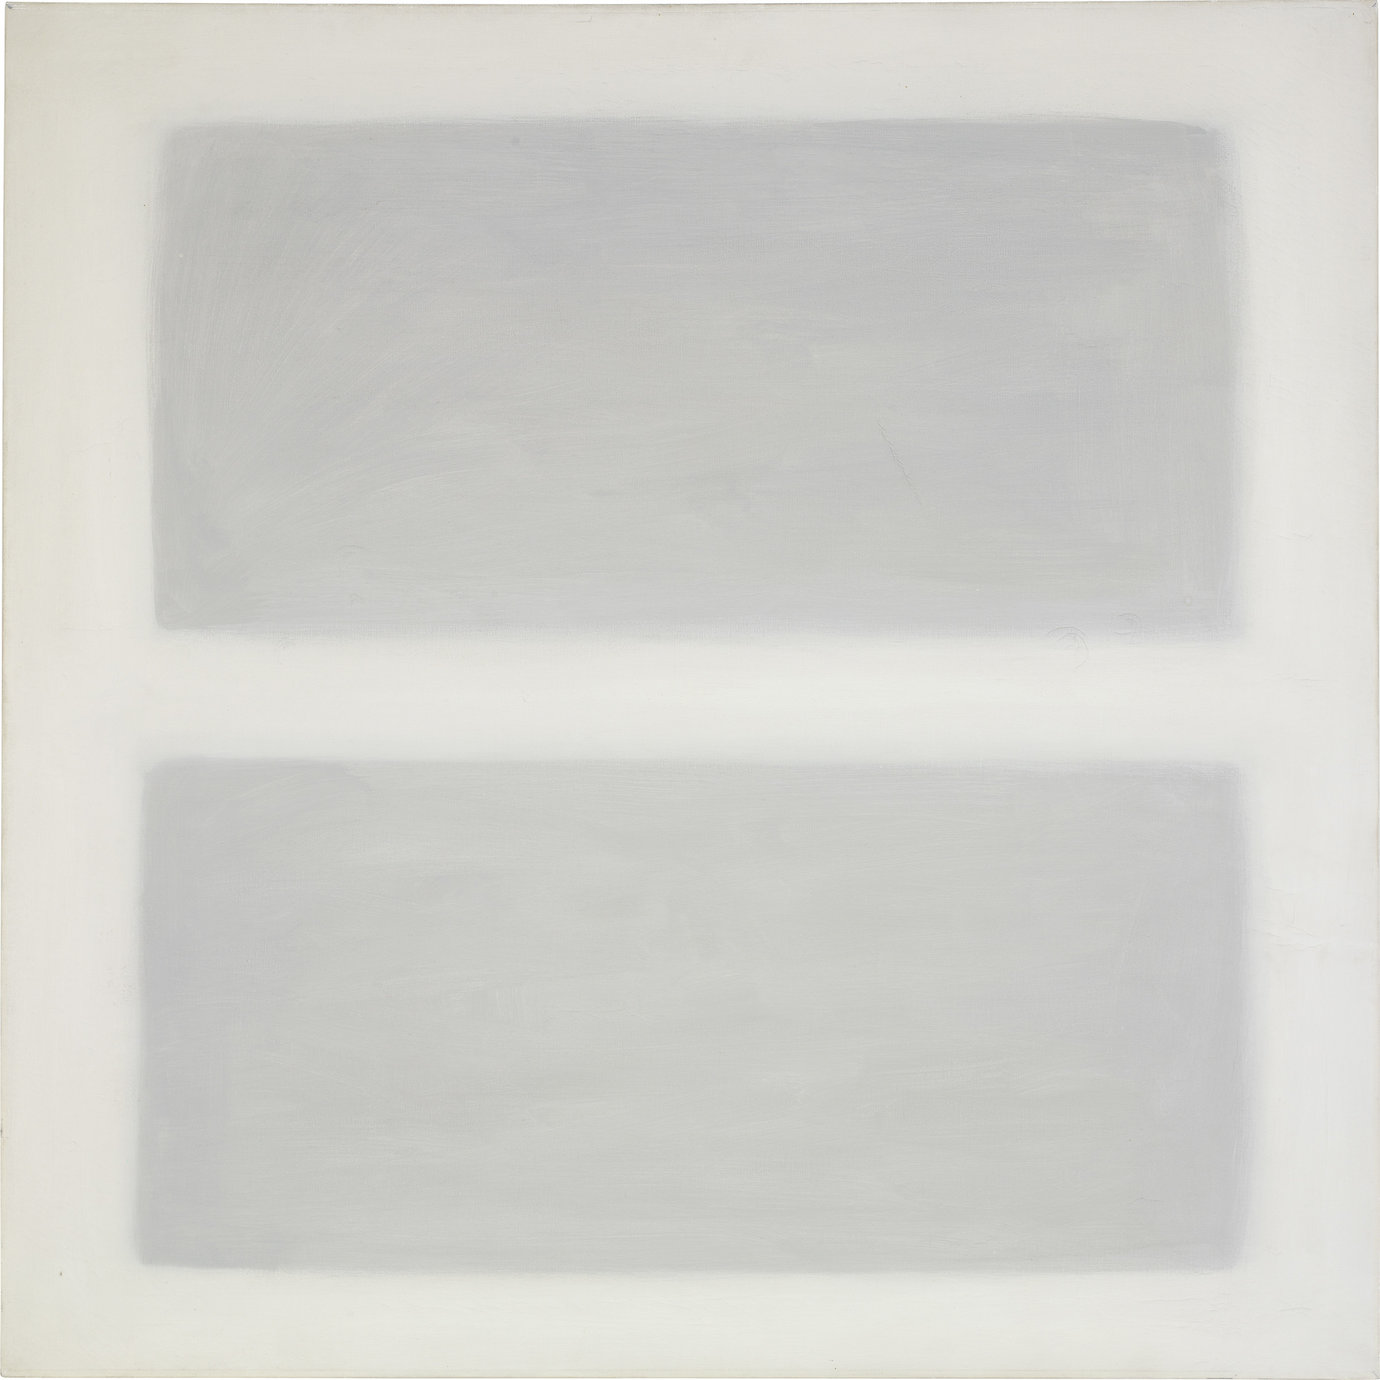 ", 1958. Oil on canvas, 40"" x 40"" (101.6 cm x 101.6 cm)."